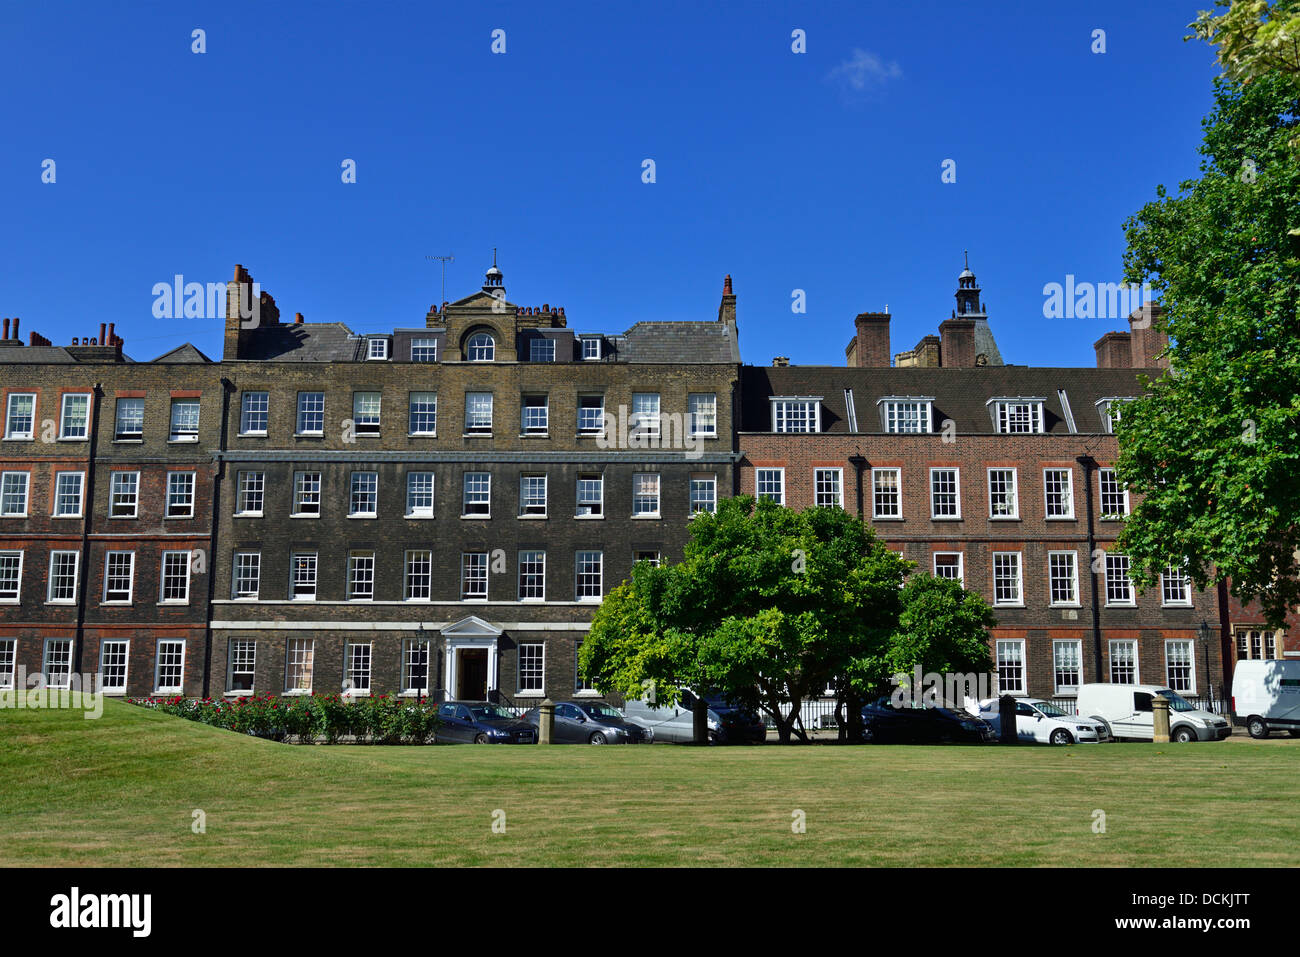 New Square, Lincoln's Inn, Borough of Holborn, London WC2, United Kingdom - Stock Image